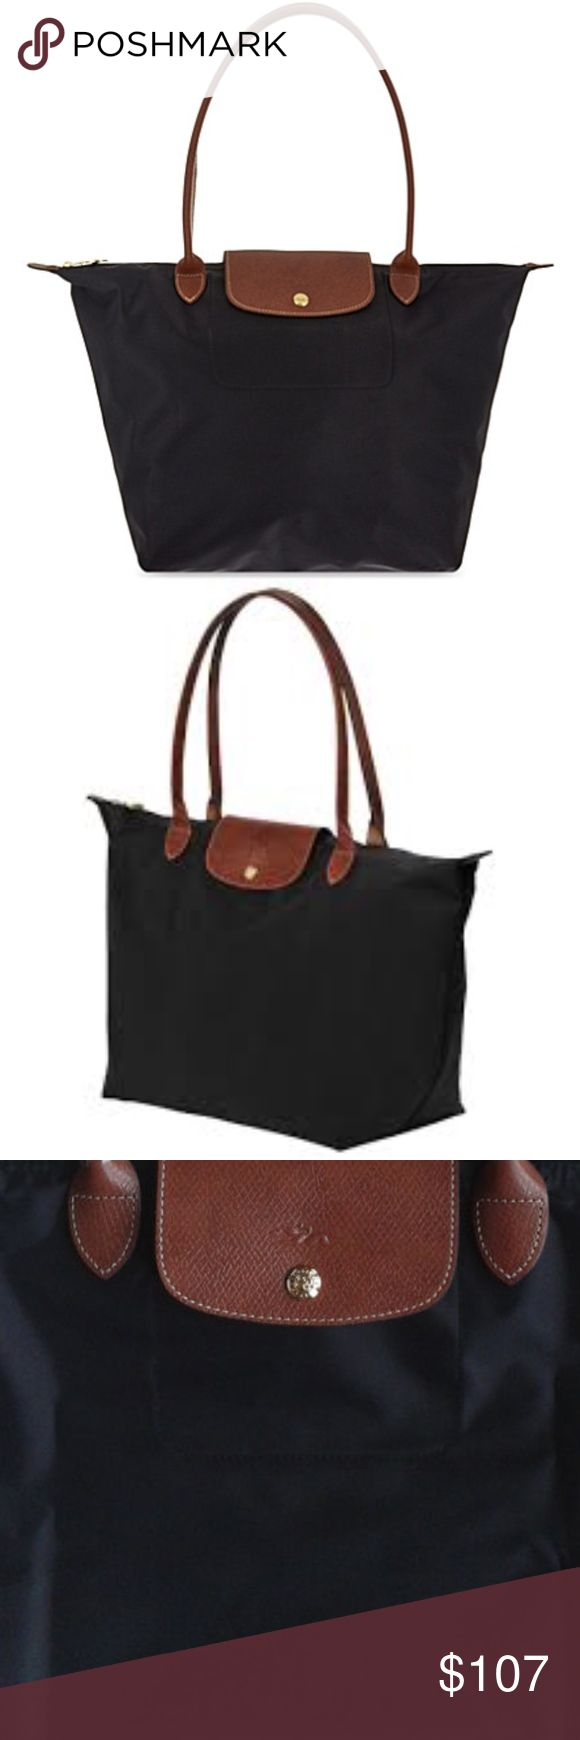 Black 'Small Le Pliage' Shoulder Longchamp Bag In very good condition.. NWOT.. Firm price as the bag is in good condition! FINAL MARDOWN! Longchamp Bags